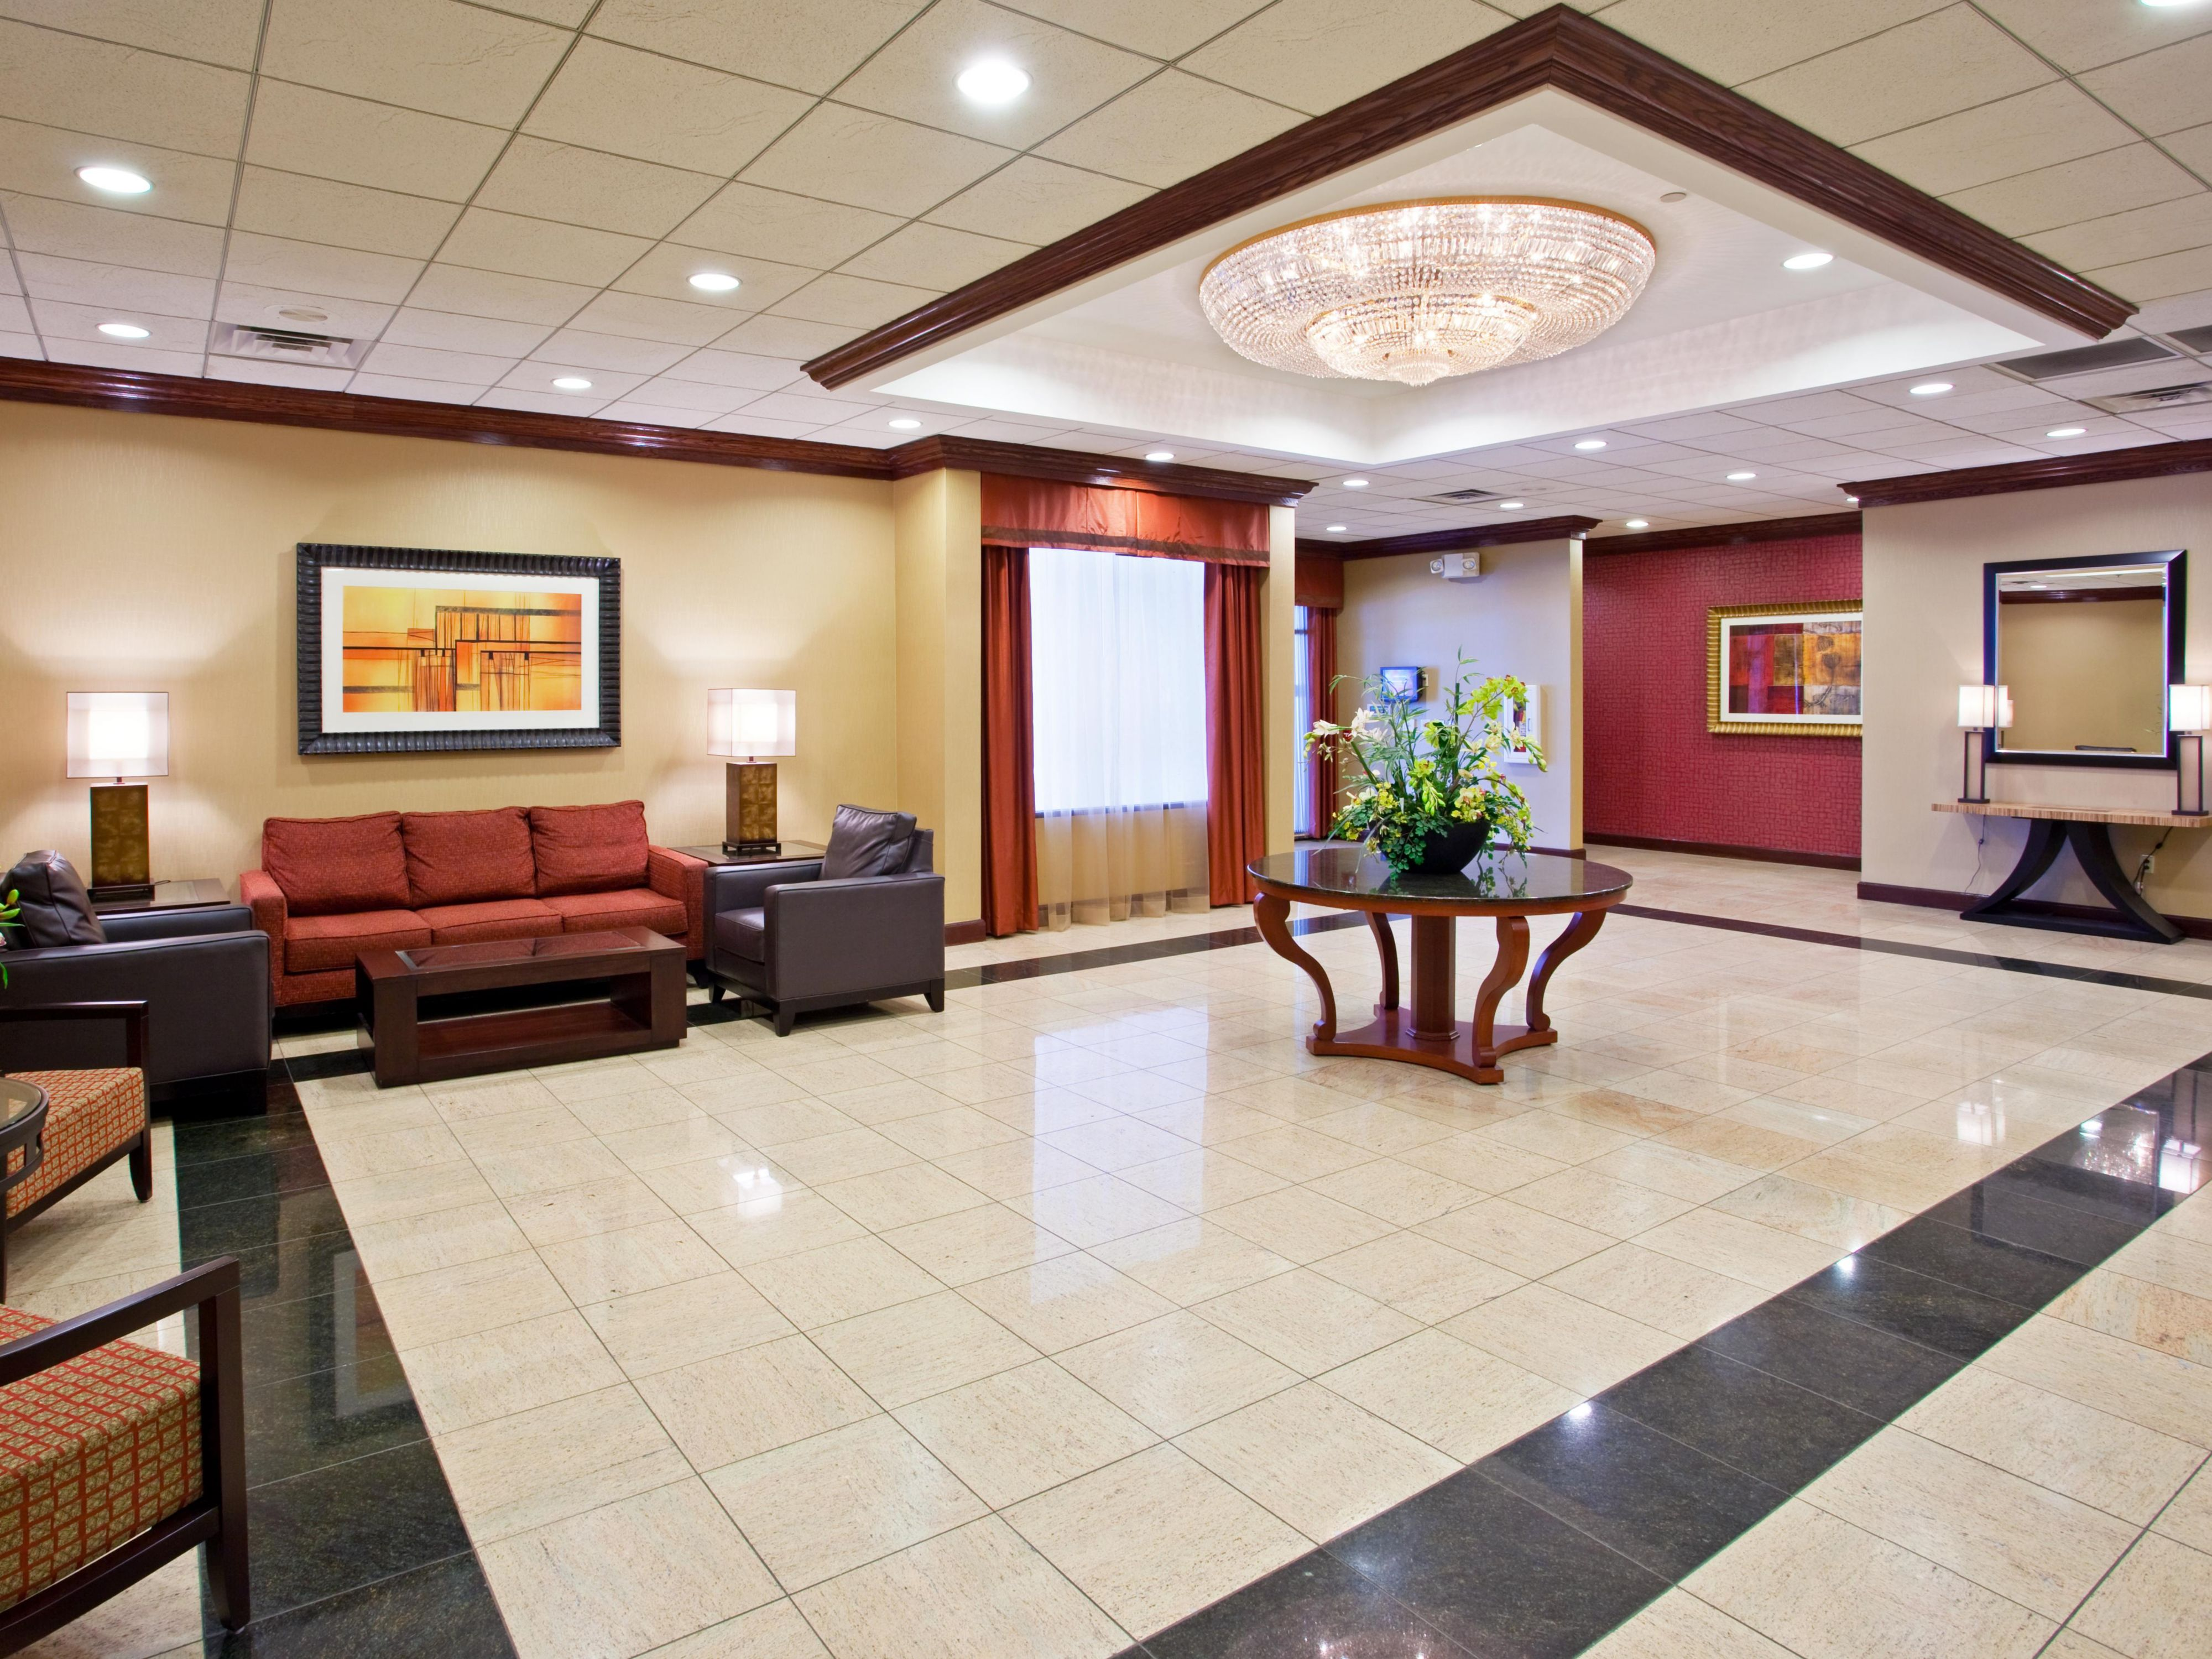 Hotel Conference Center Lobby Youngstown South